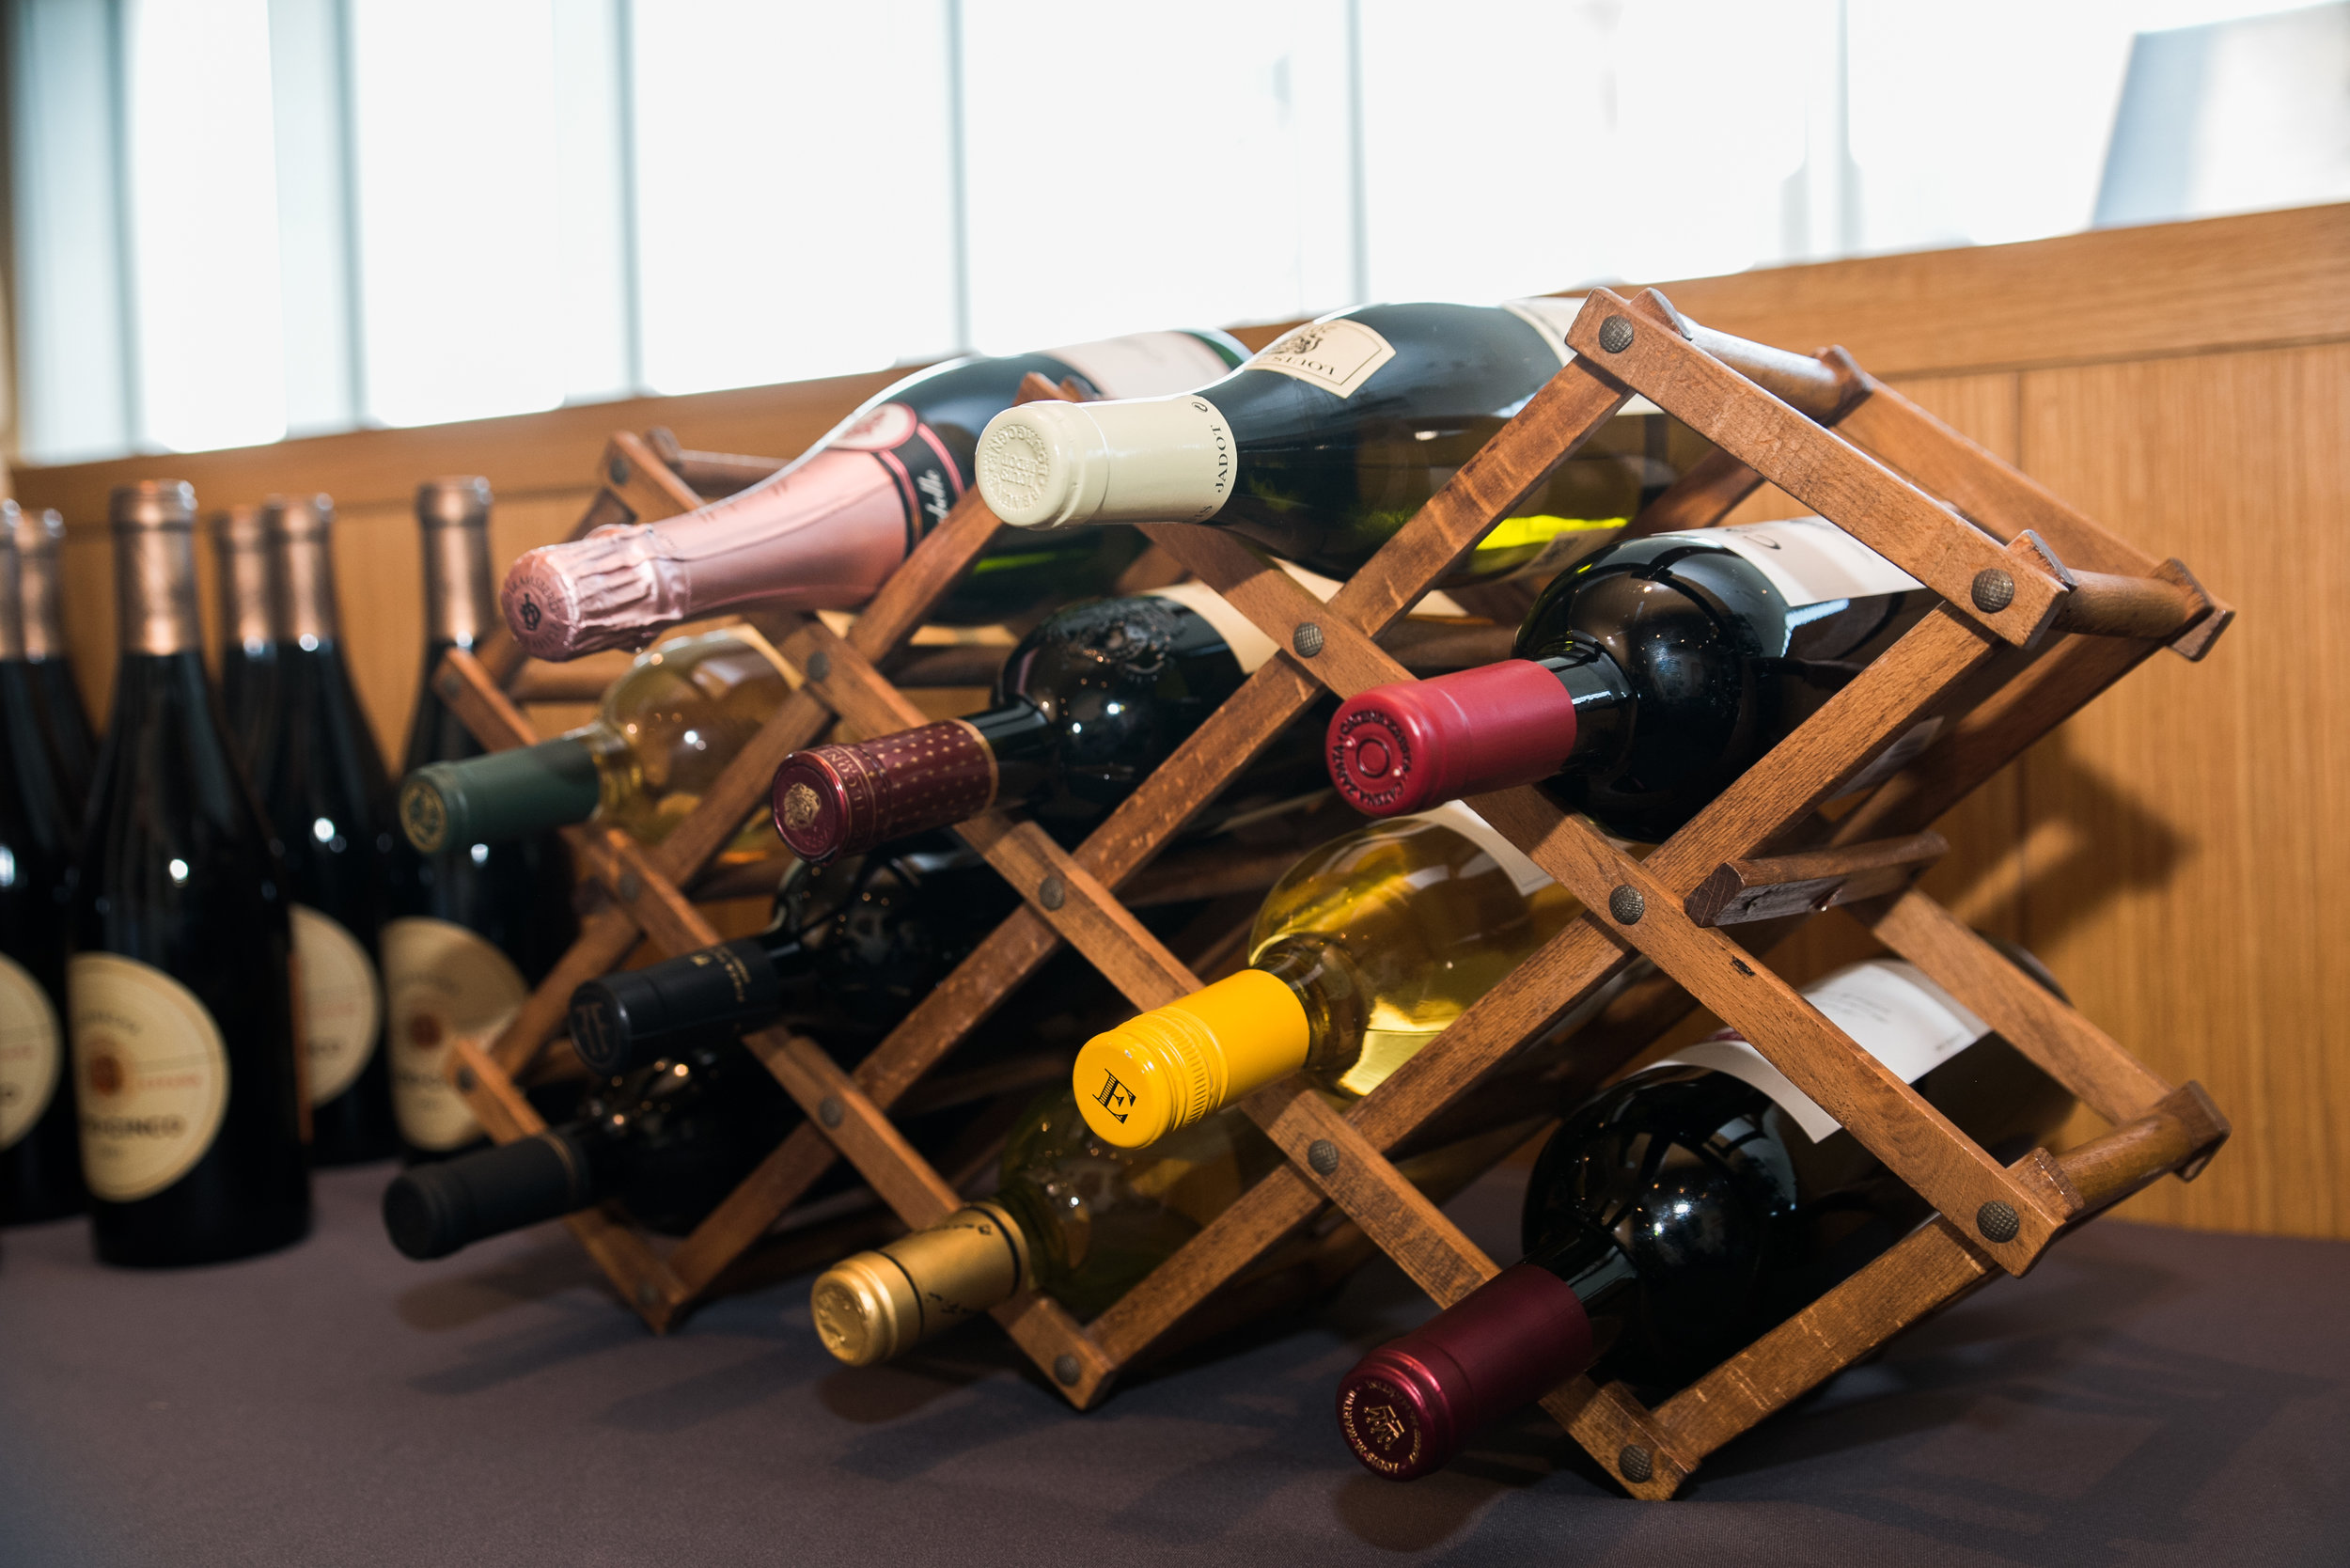 Can't make it to the event? Contact a DGT™ Board Member or Staff member for $5 tickets to enter our wine raffle.